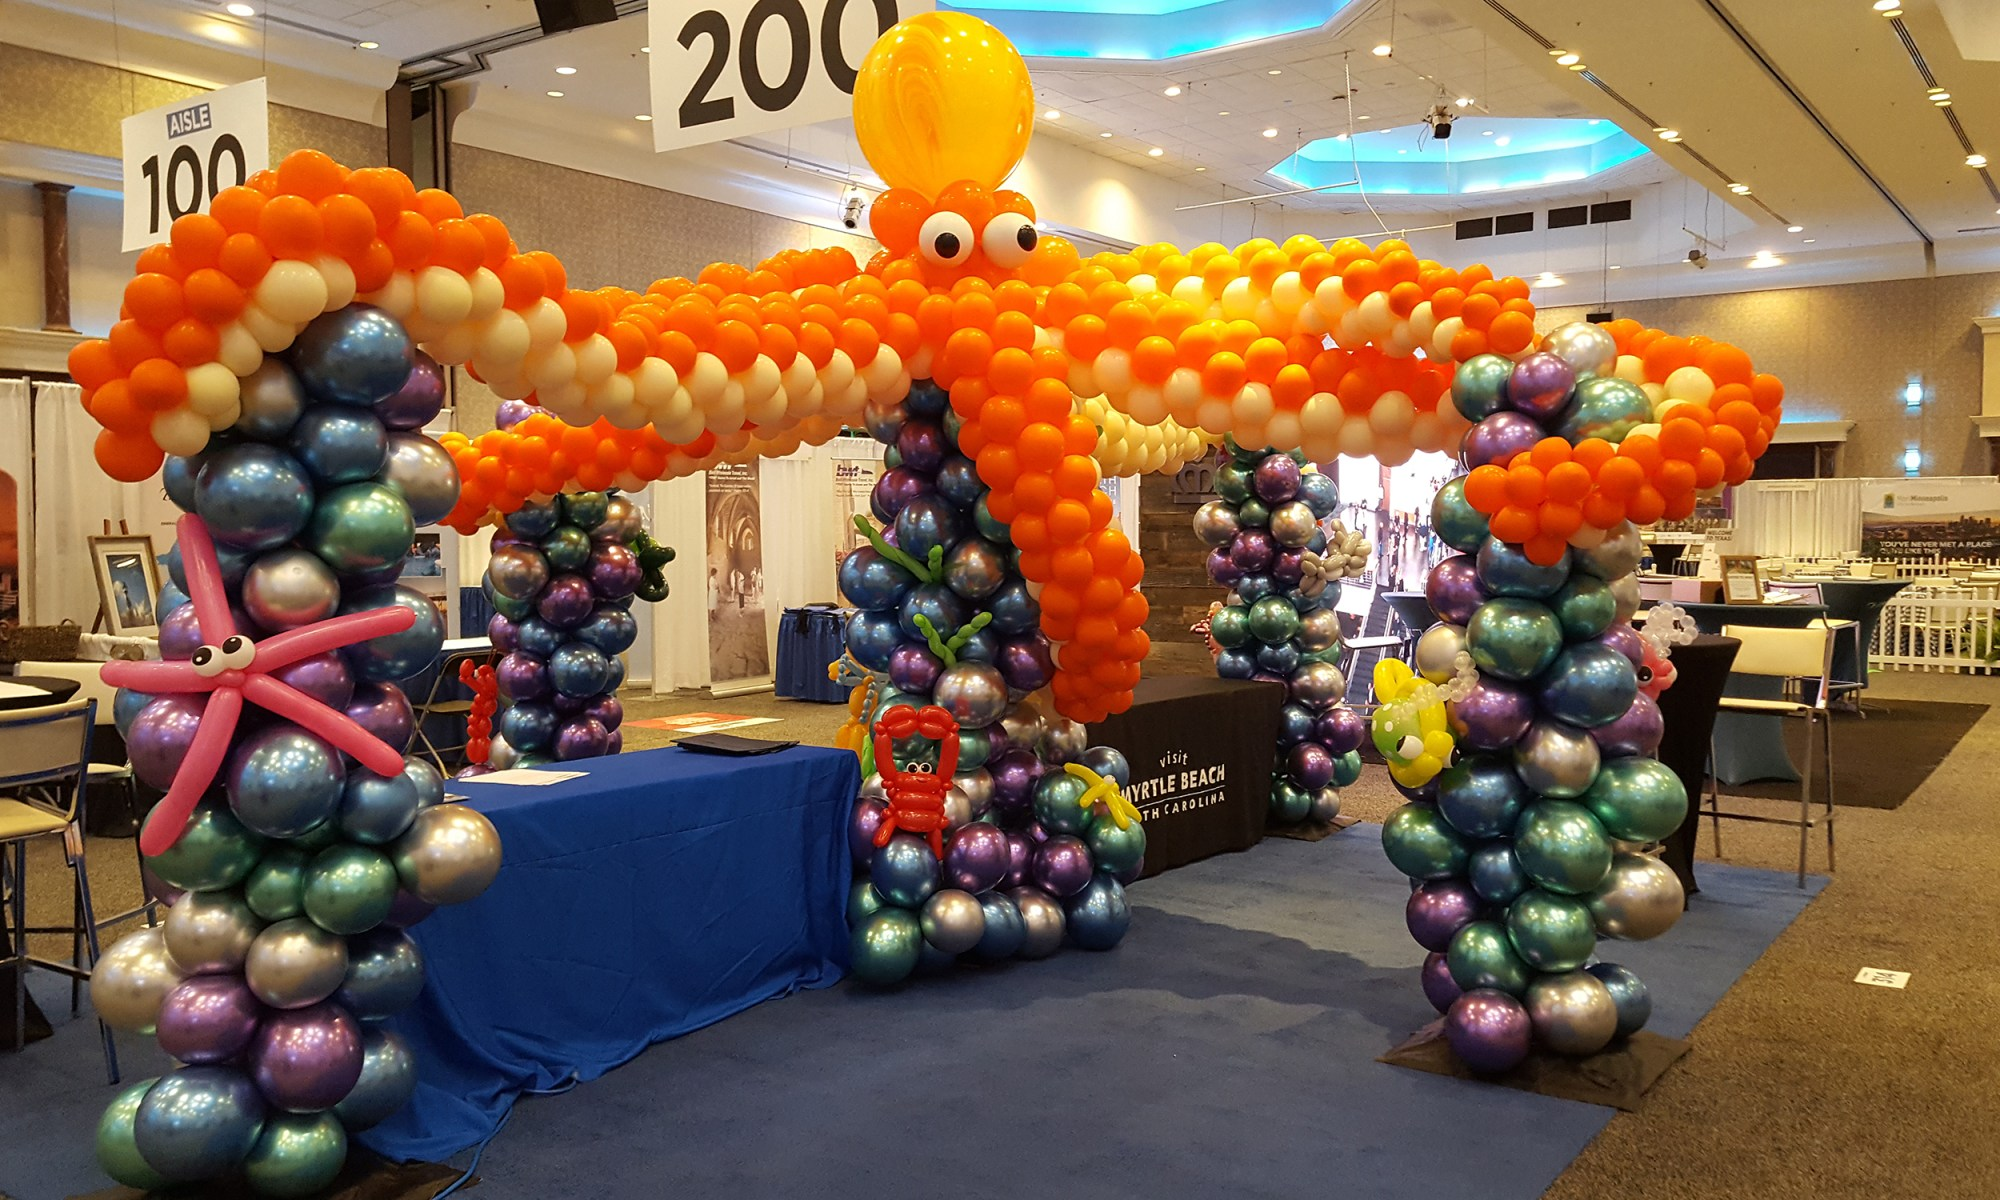 Octopus - Trade Show Booth Decor - Balloonopolis, Columbia, South Carolina